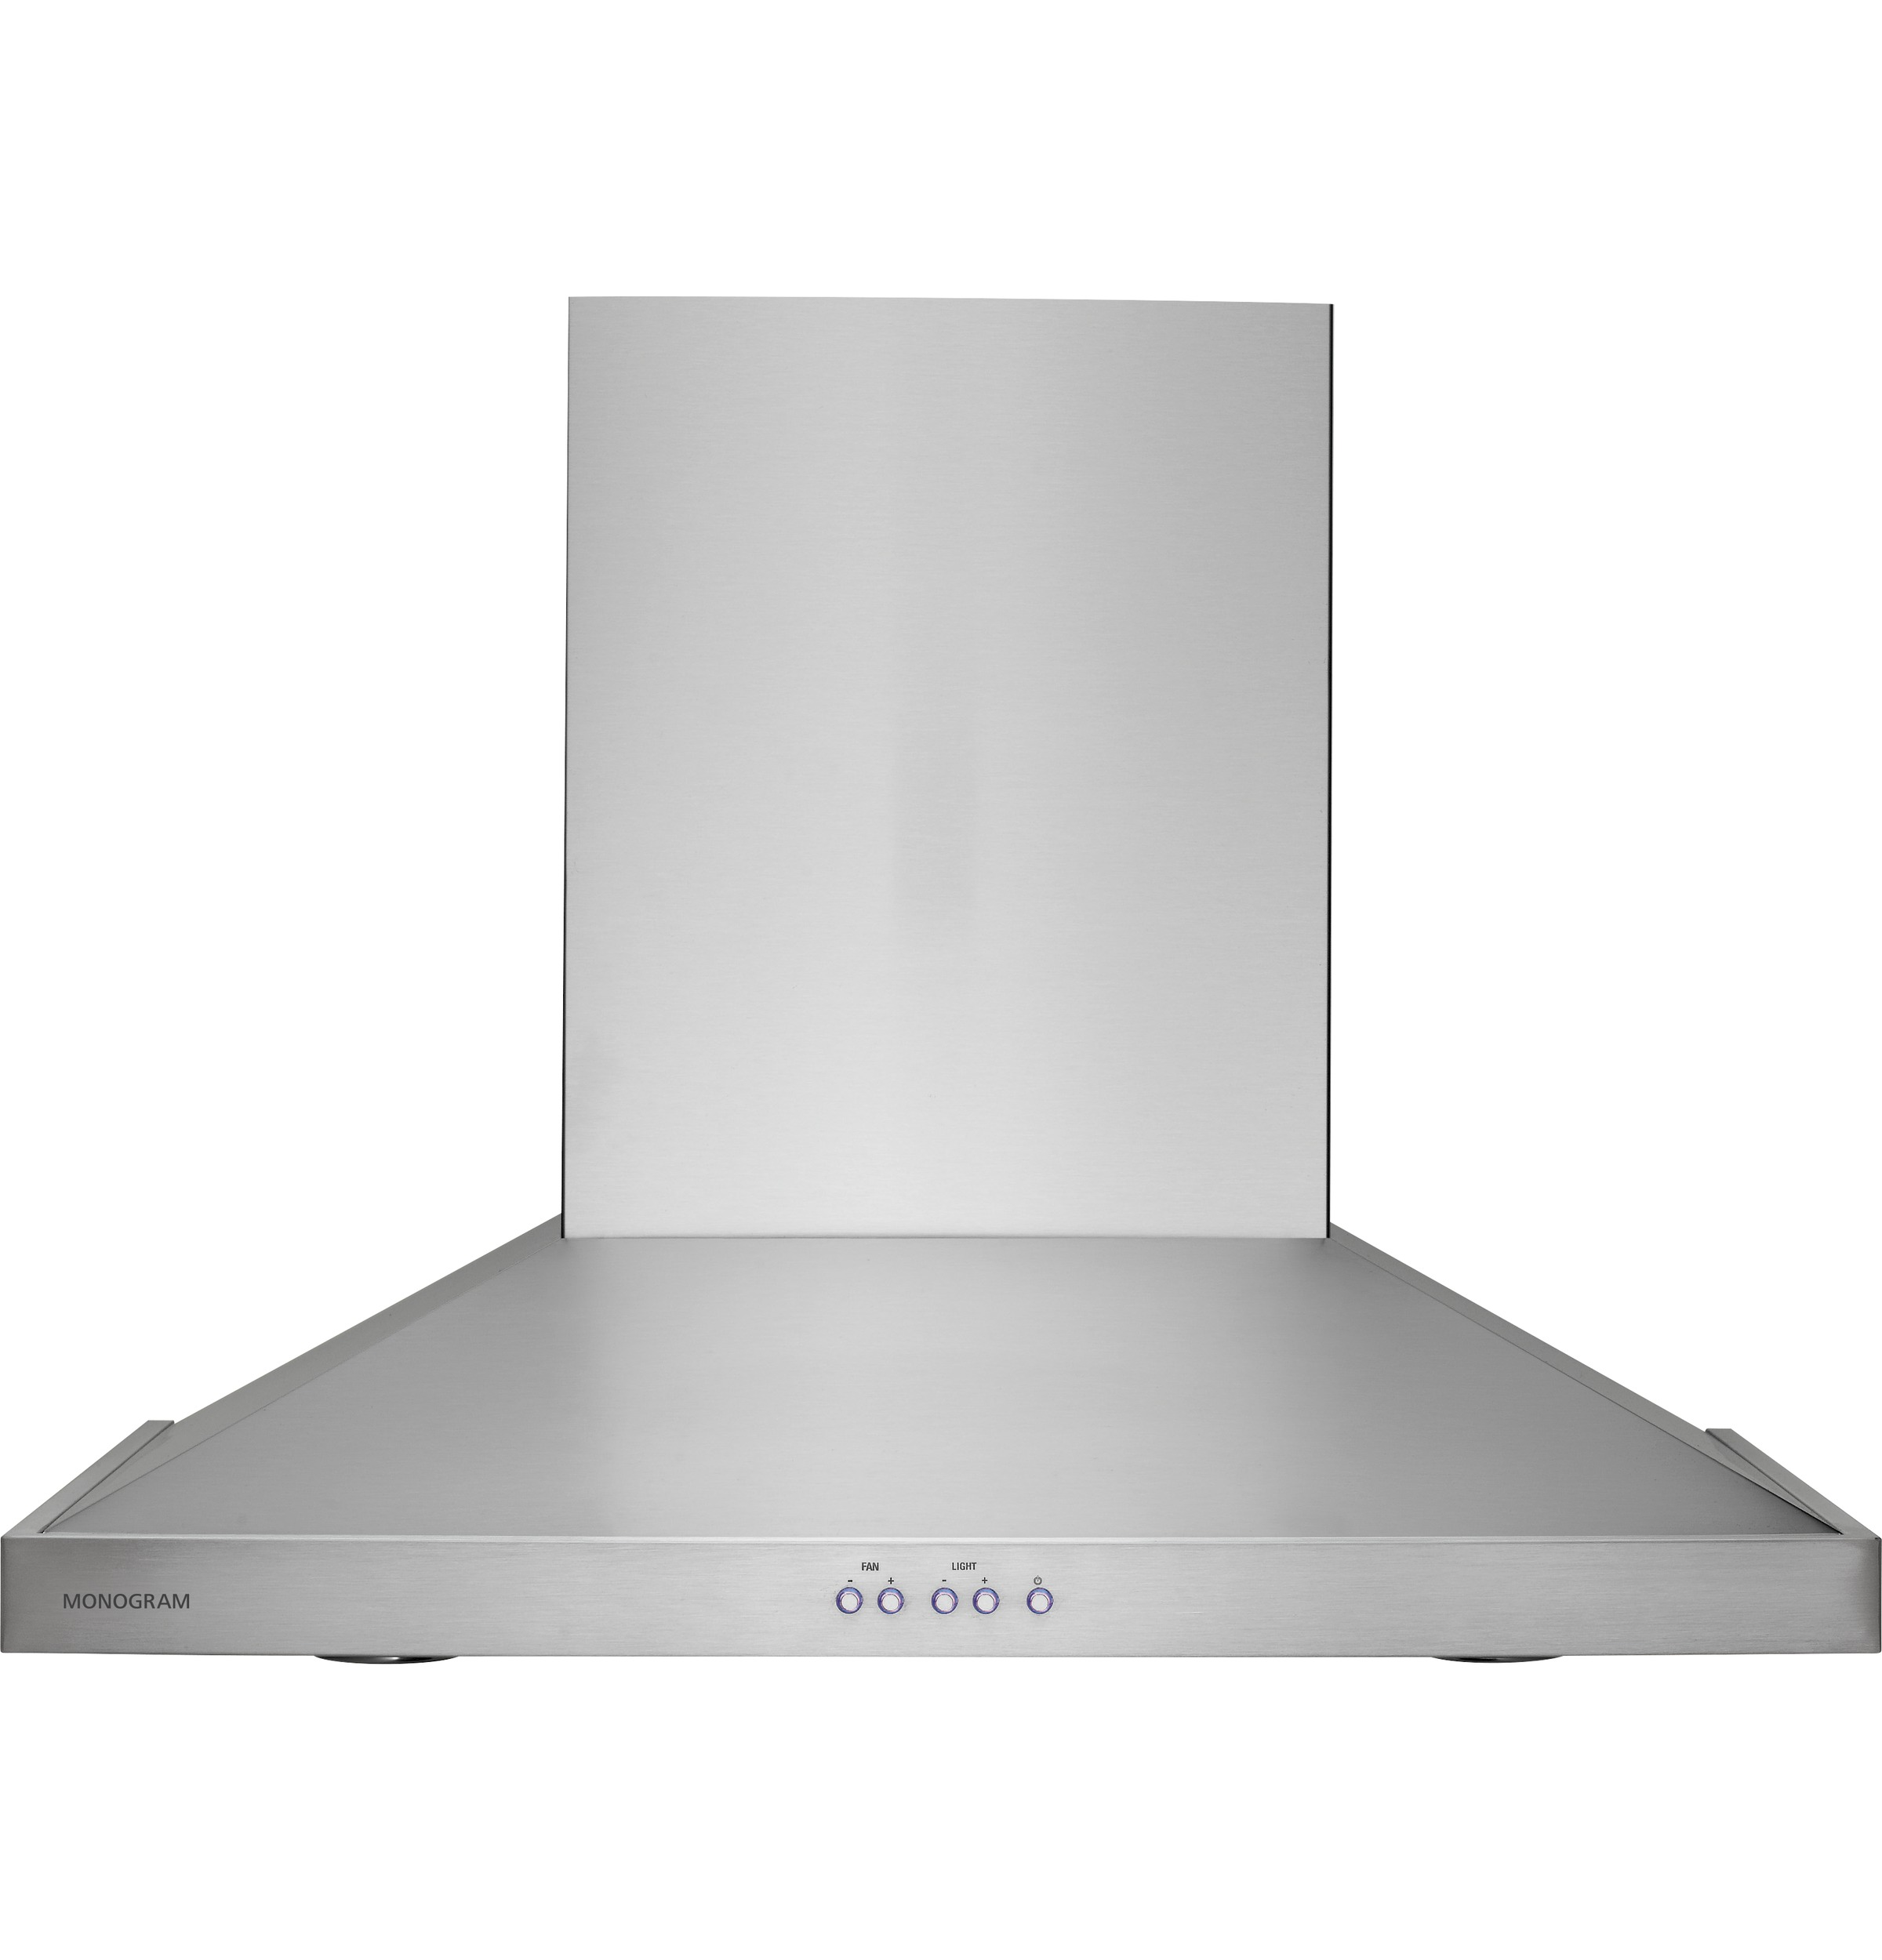 Monogram 30 Quot Wall Mounted Vent Hood Zv830smss Ge